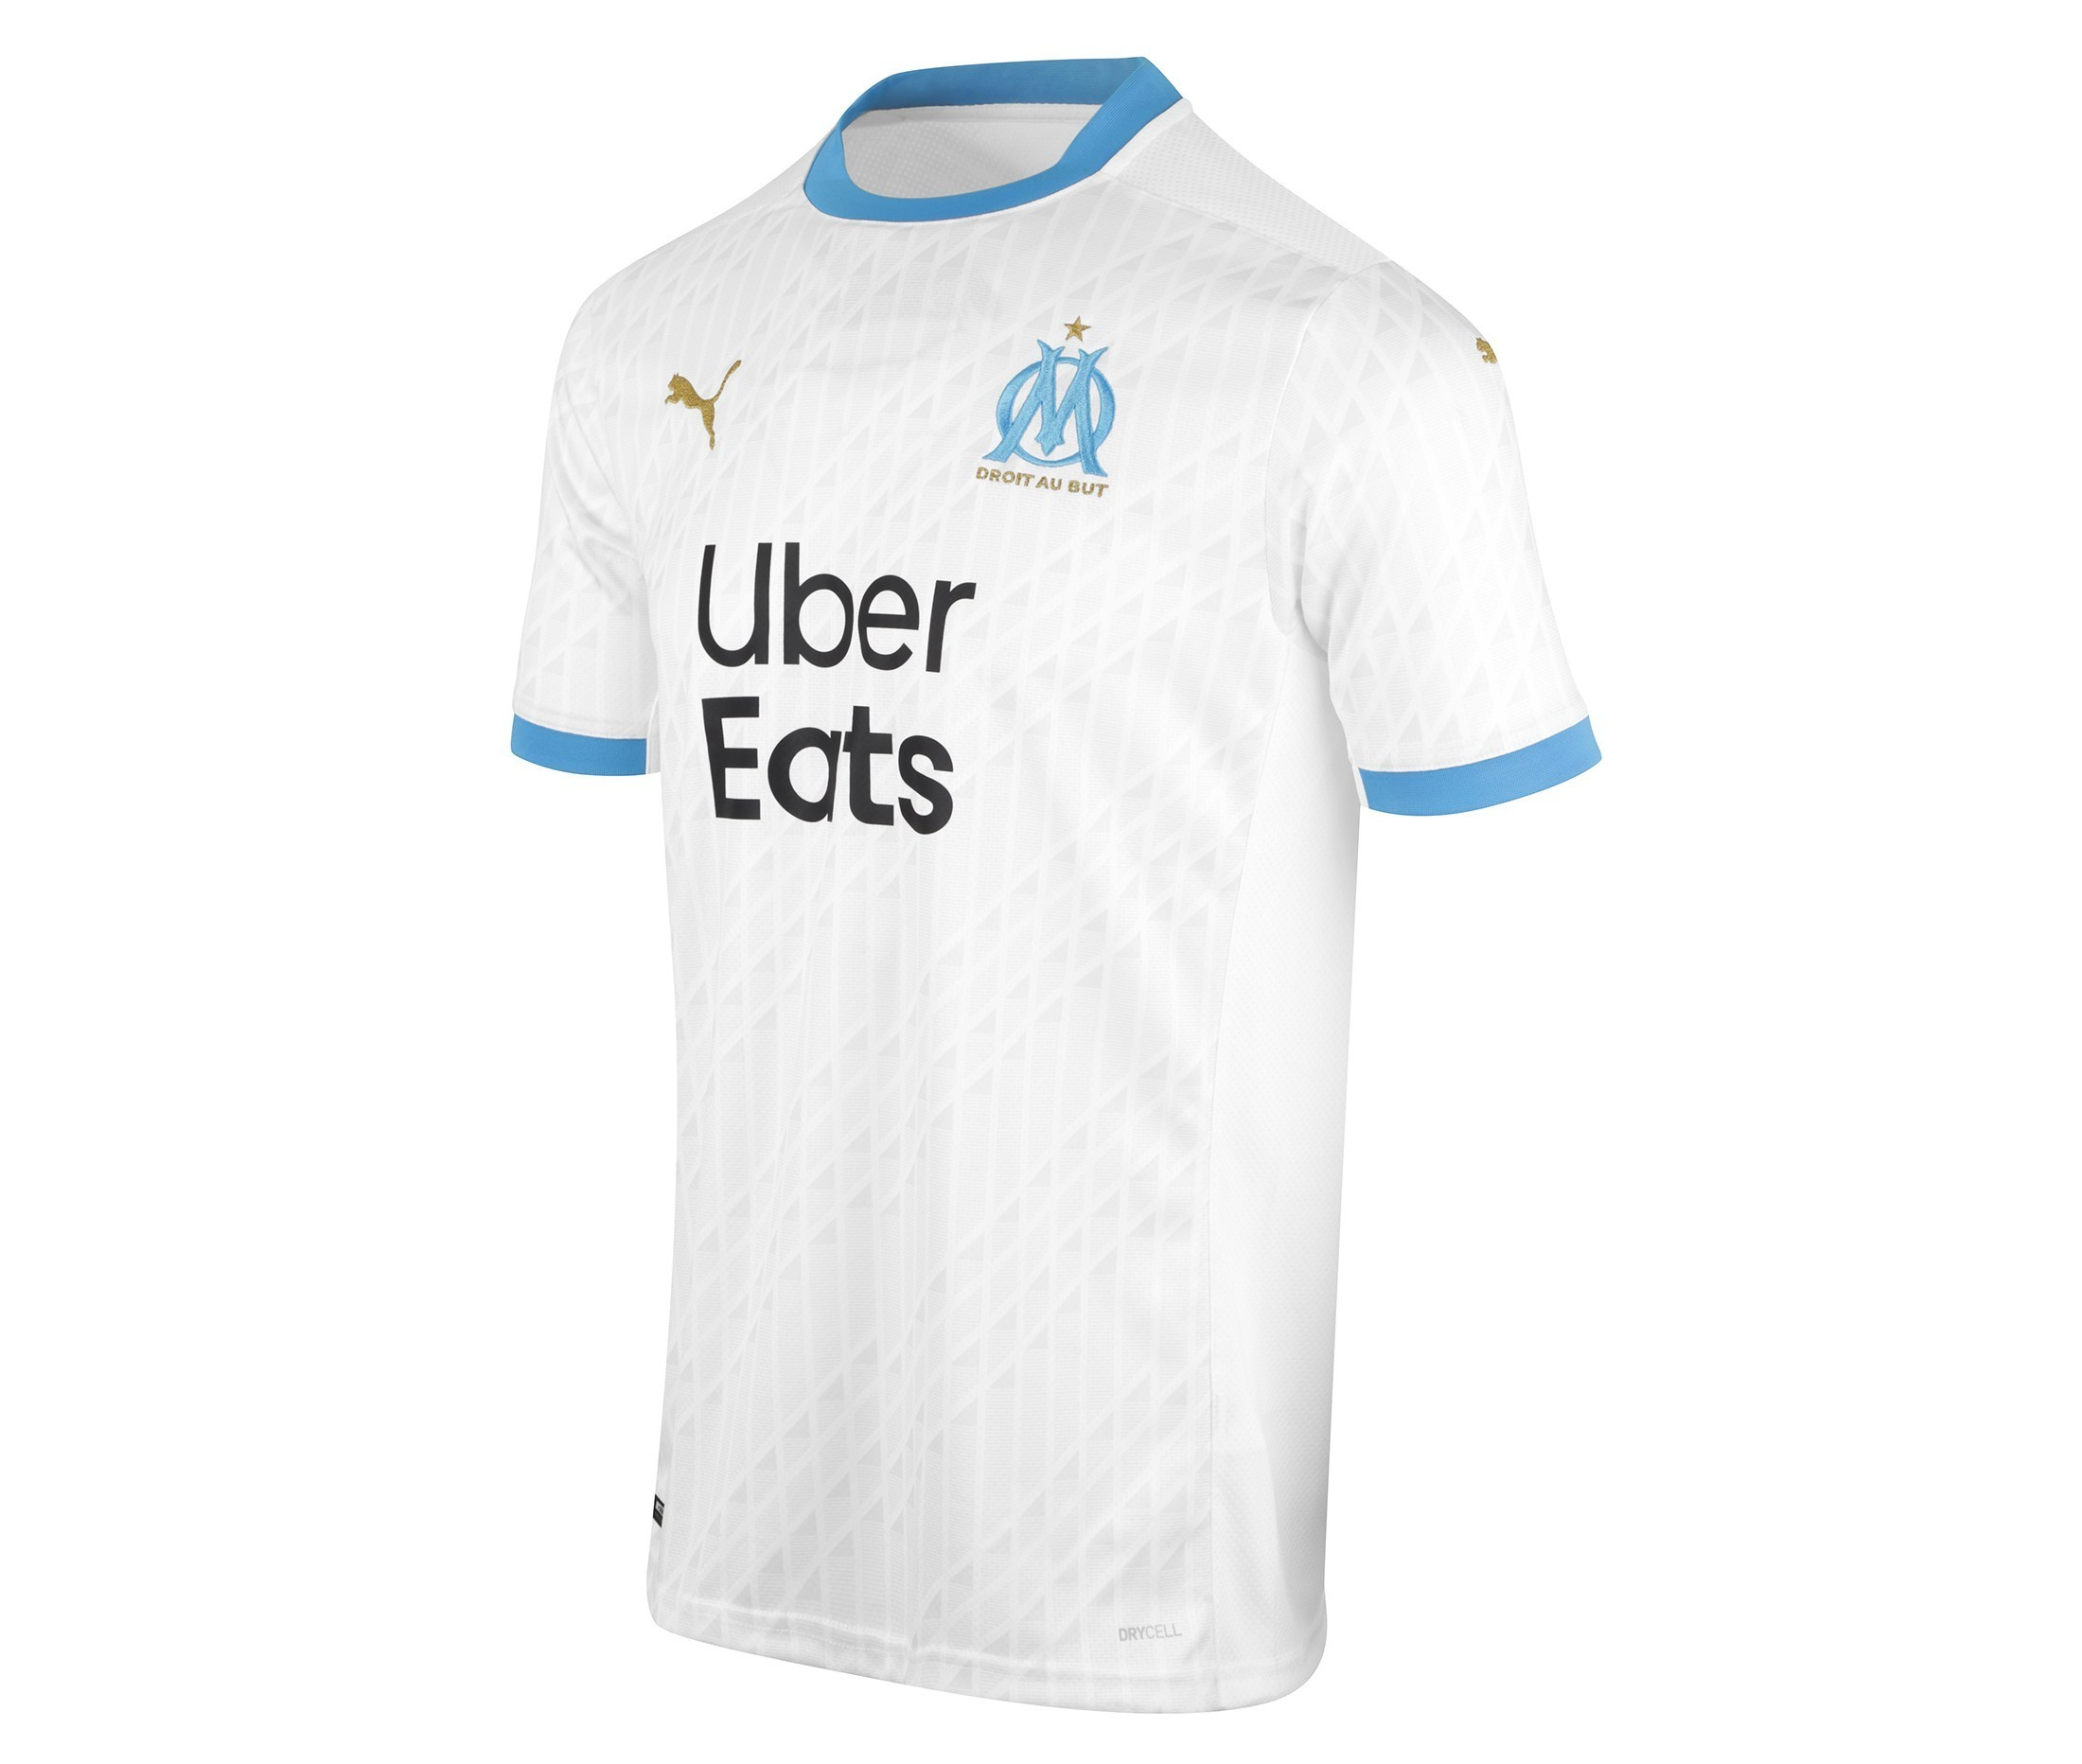 http://www.footballshirtculture.com/images/stories/olympique-marseille-2020-2021-home-kit/olympique_marseille_2020_2021_home_kit_1.jpg